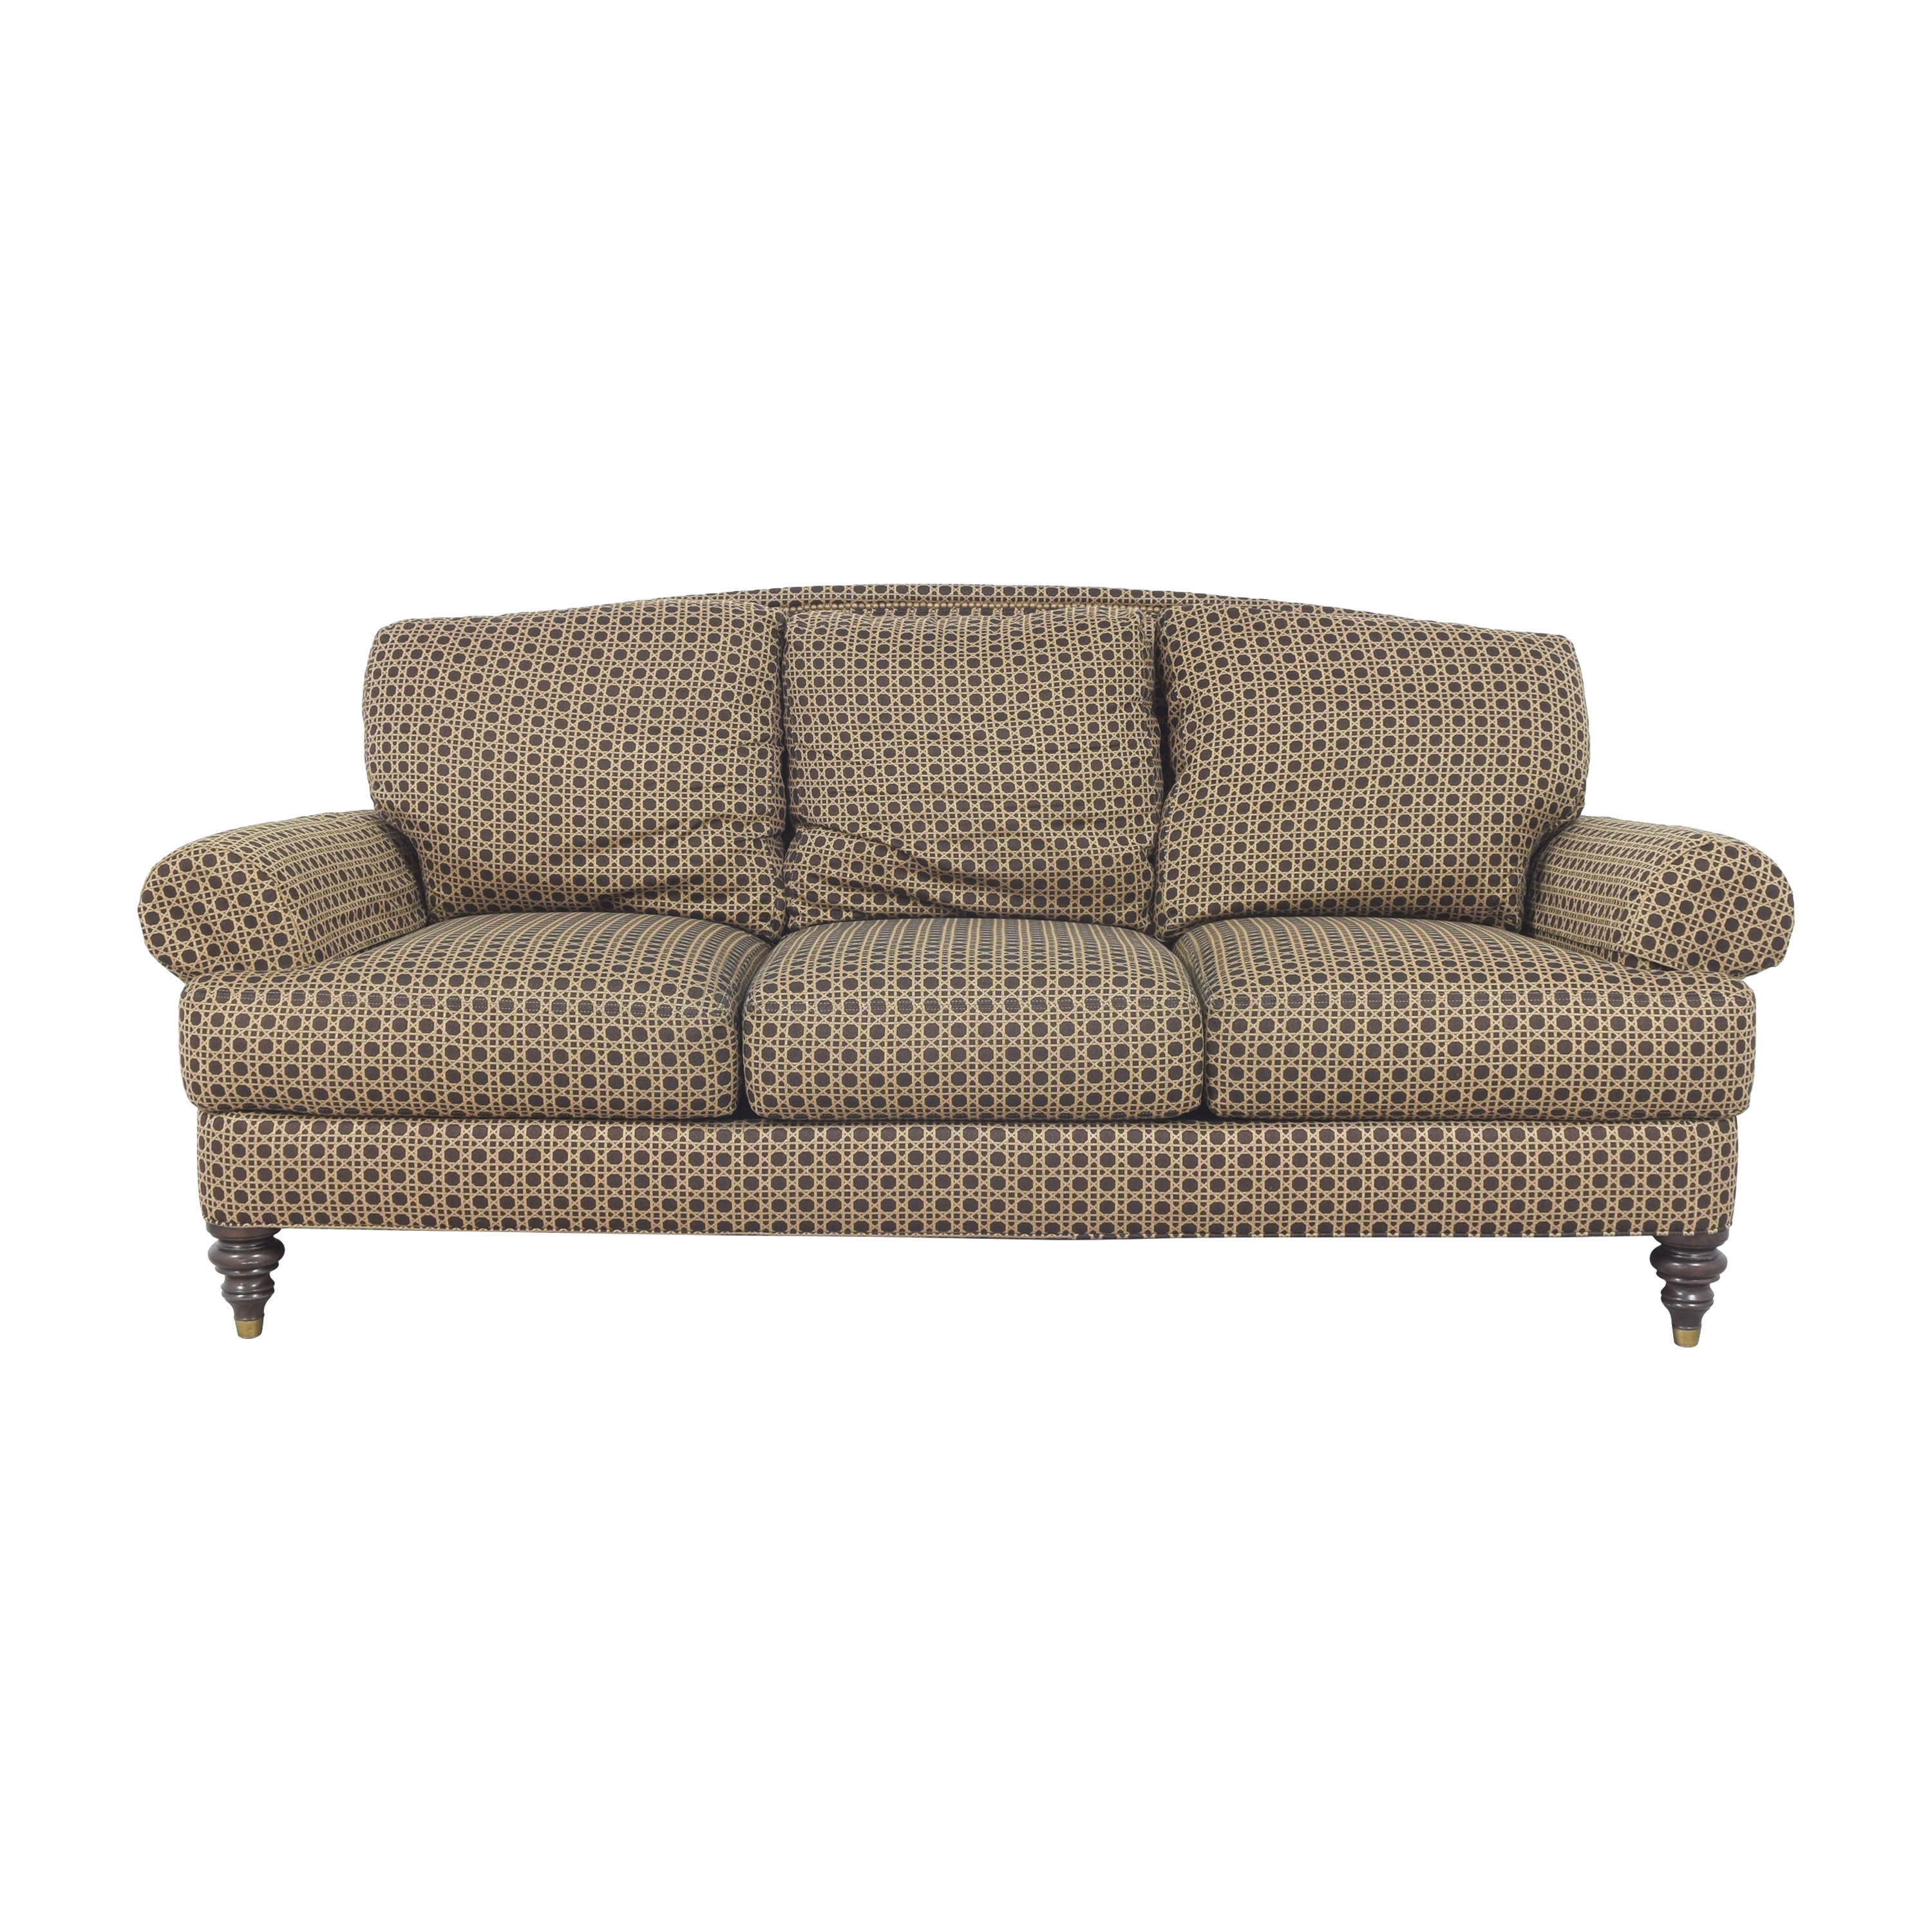 Ethan Allen Ethan Allen Hyde Sofa for sale